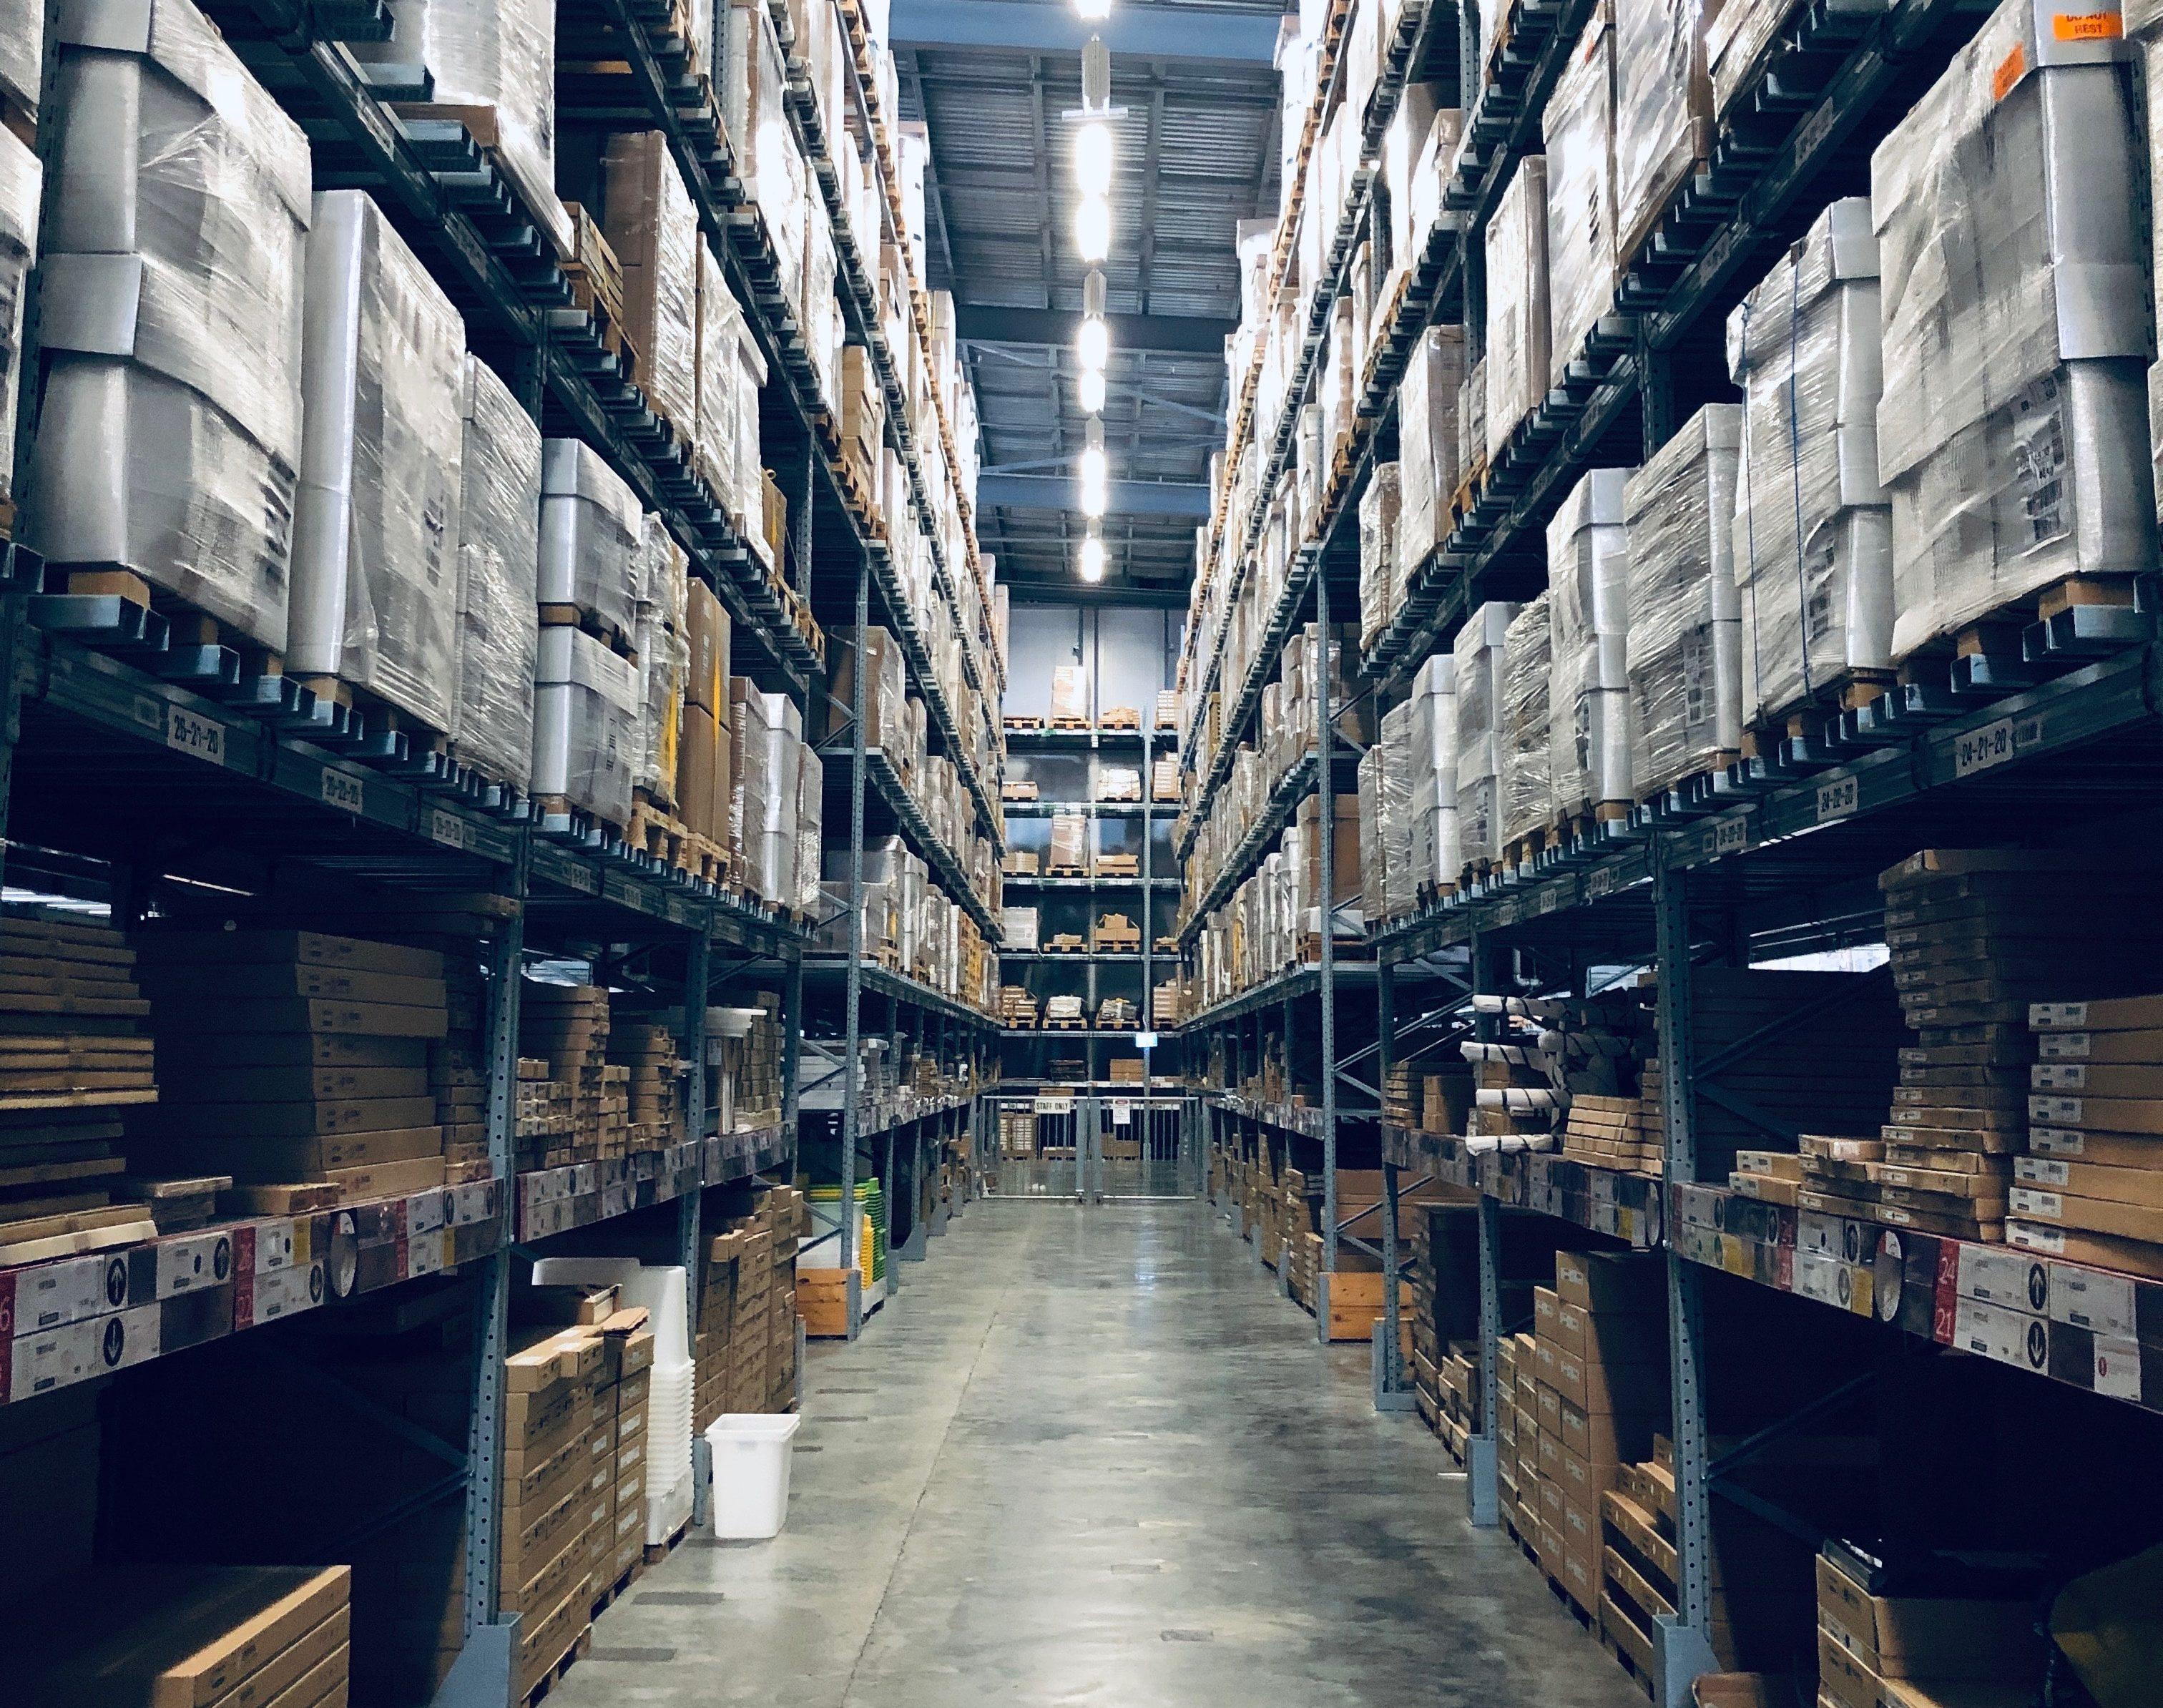 Warehouse full of boxes